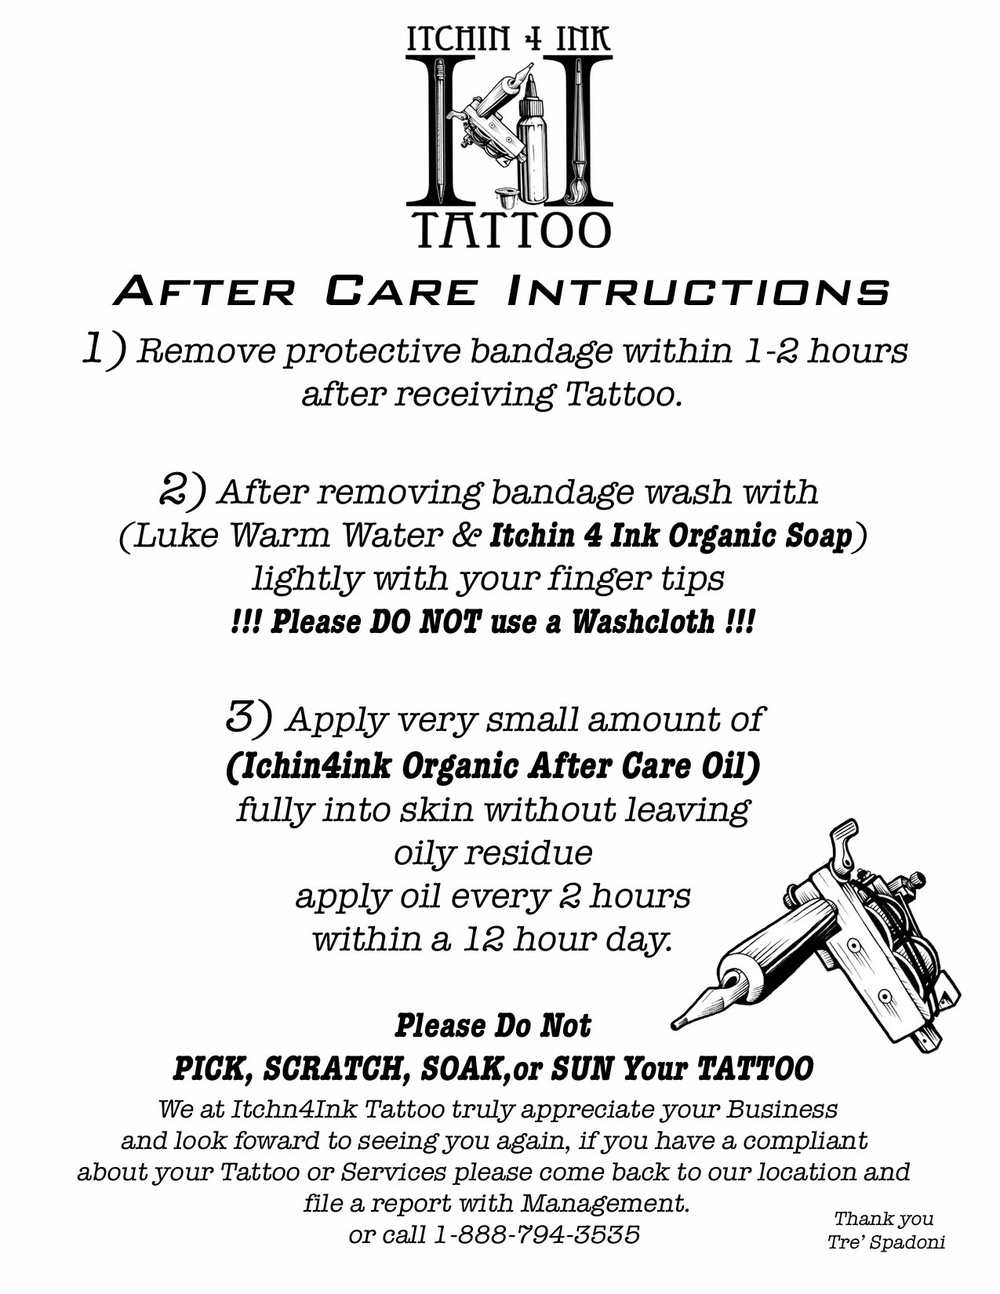 *Note- All Clients that purchase OTC Organic Tattoo Care products are using at there own risk. No lawsuits or legal acquisitions pertaining to any allergic reactions or irritations should be committed to Itchin 4 Ink Tattoo LLC. All Ingredients are listed on individual packaging and in full detail on this website.Any problems with this product should be reported to management in person at Itchin 4 Ink Tattoo LLC. Located at - 1615 Poydras Street Suite 900 . New Orleans 70112 -Monday thru Friday- 9:00am - 5:00pm